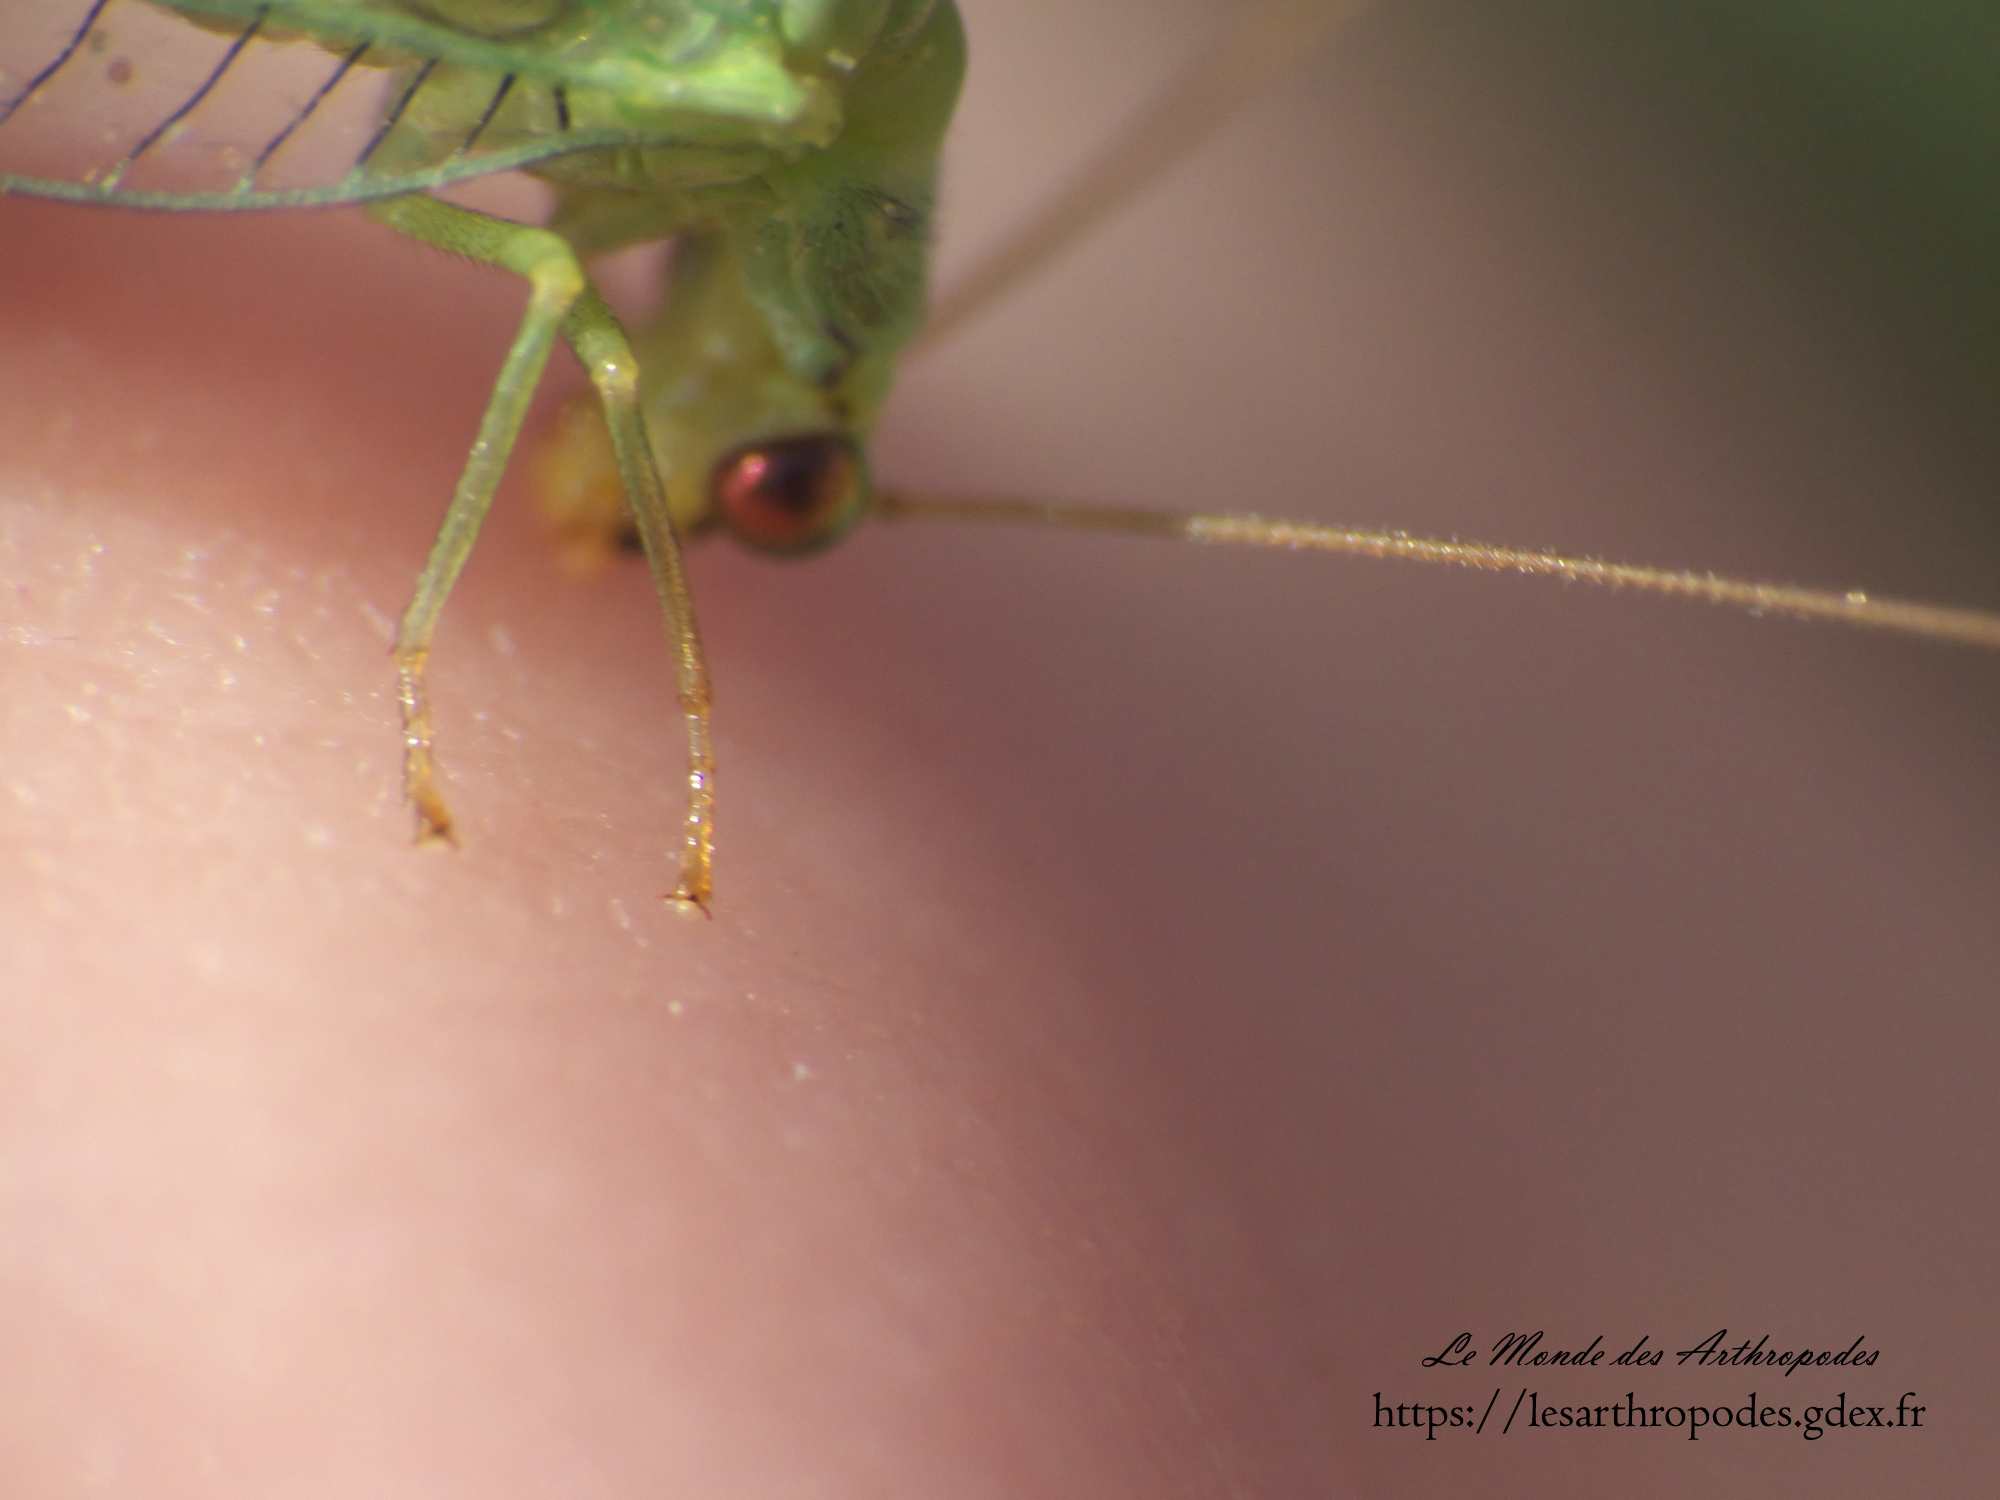 Chrysopa sp. on the tips of one of my finger, close-up on the eye